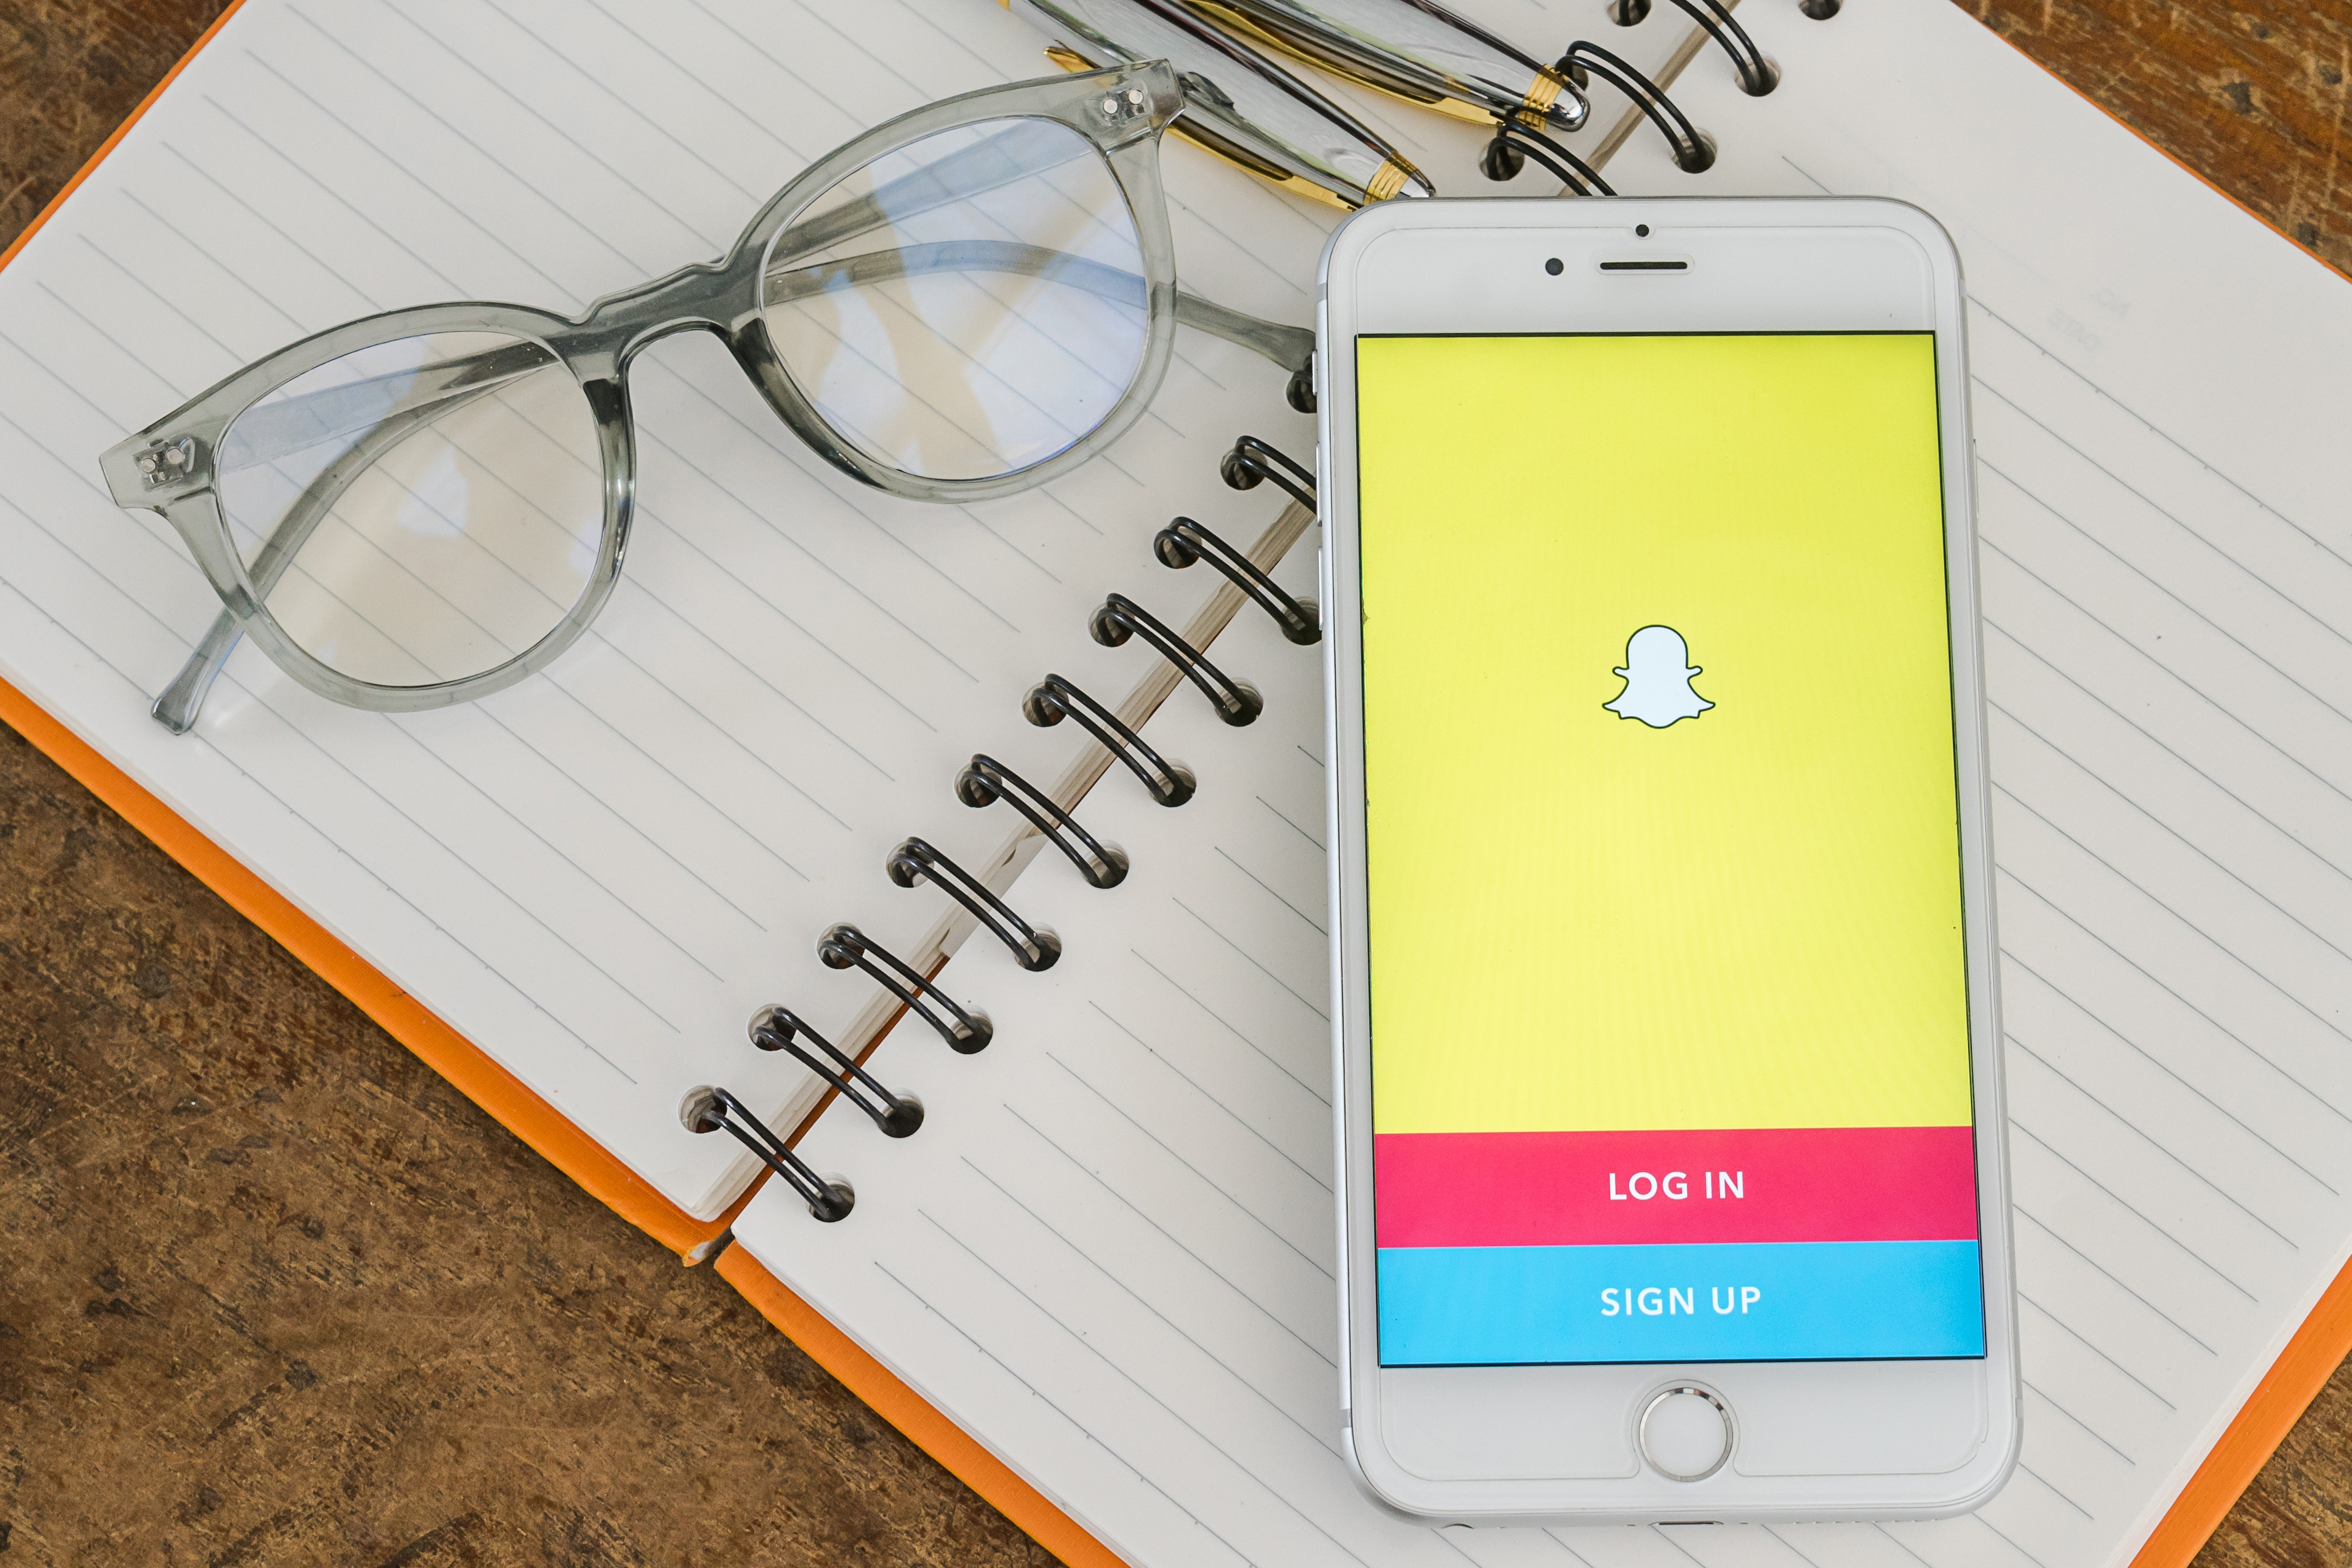 instagram versus snapchat what's the story?